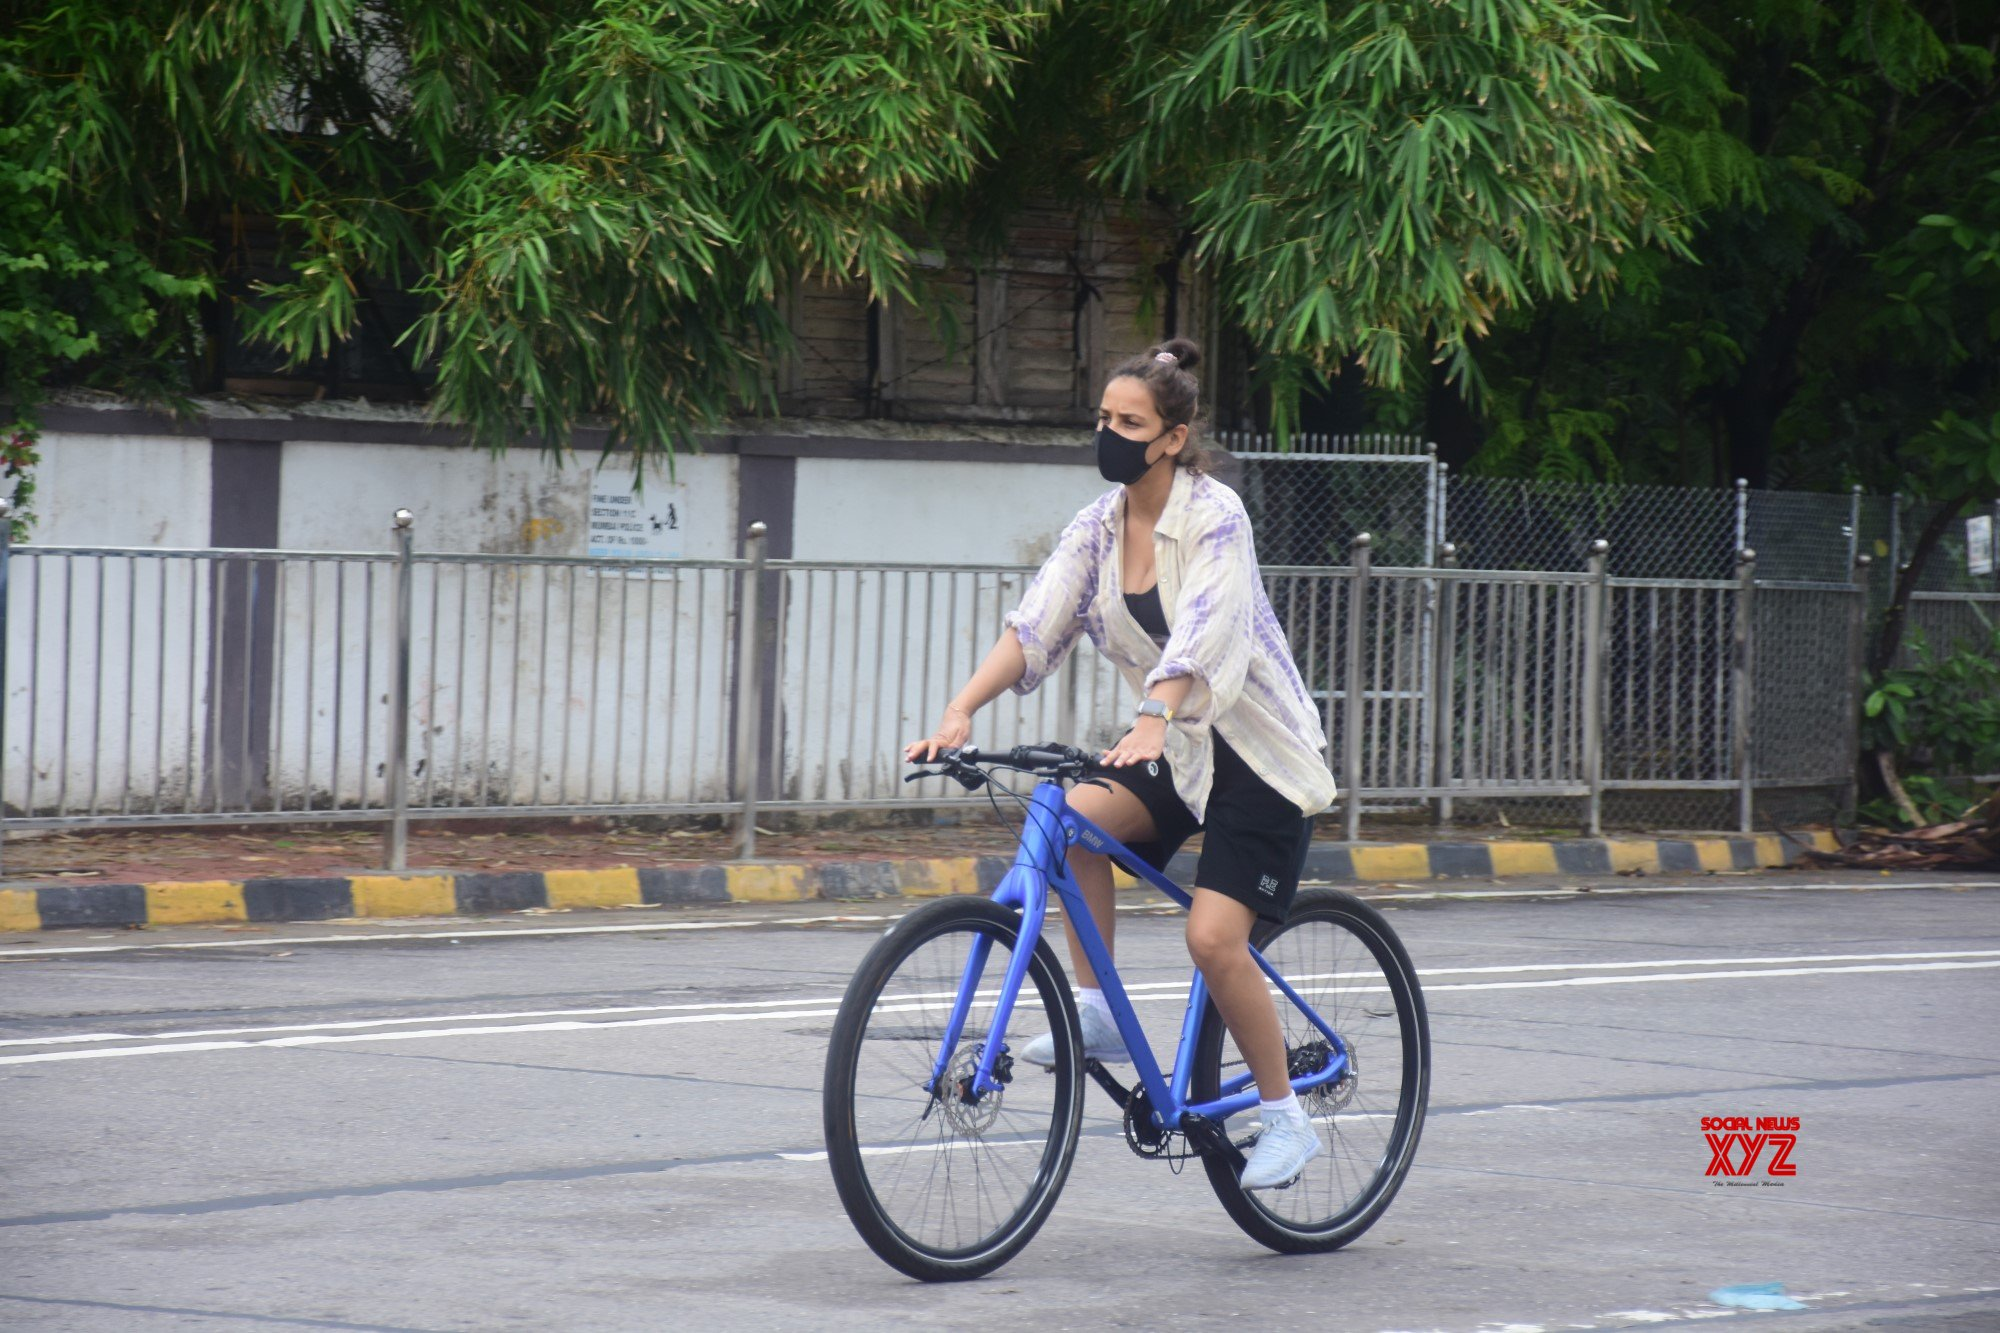 Actress Aisha Sharma Spotted Riding Cycle On The Street In Bandra - Gallery